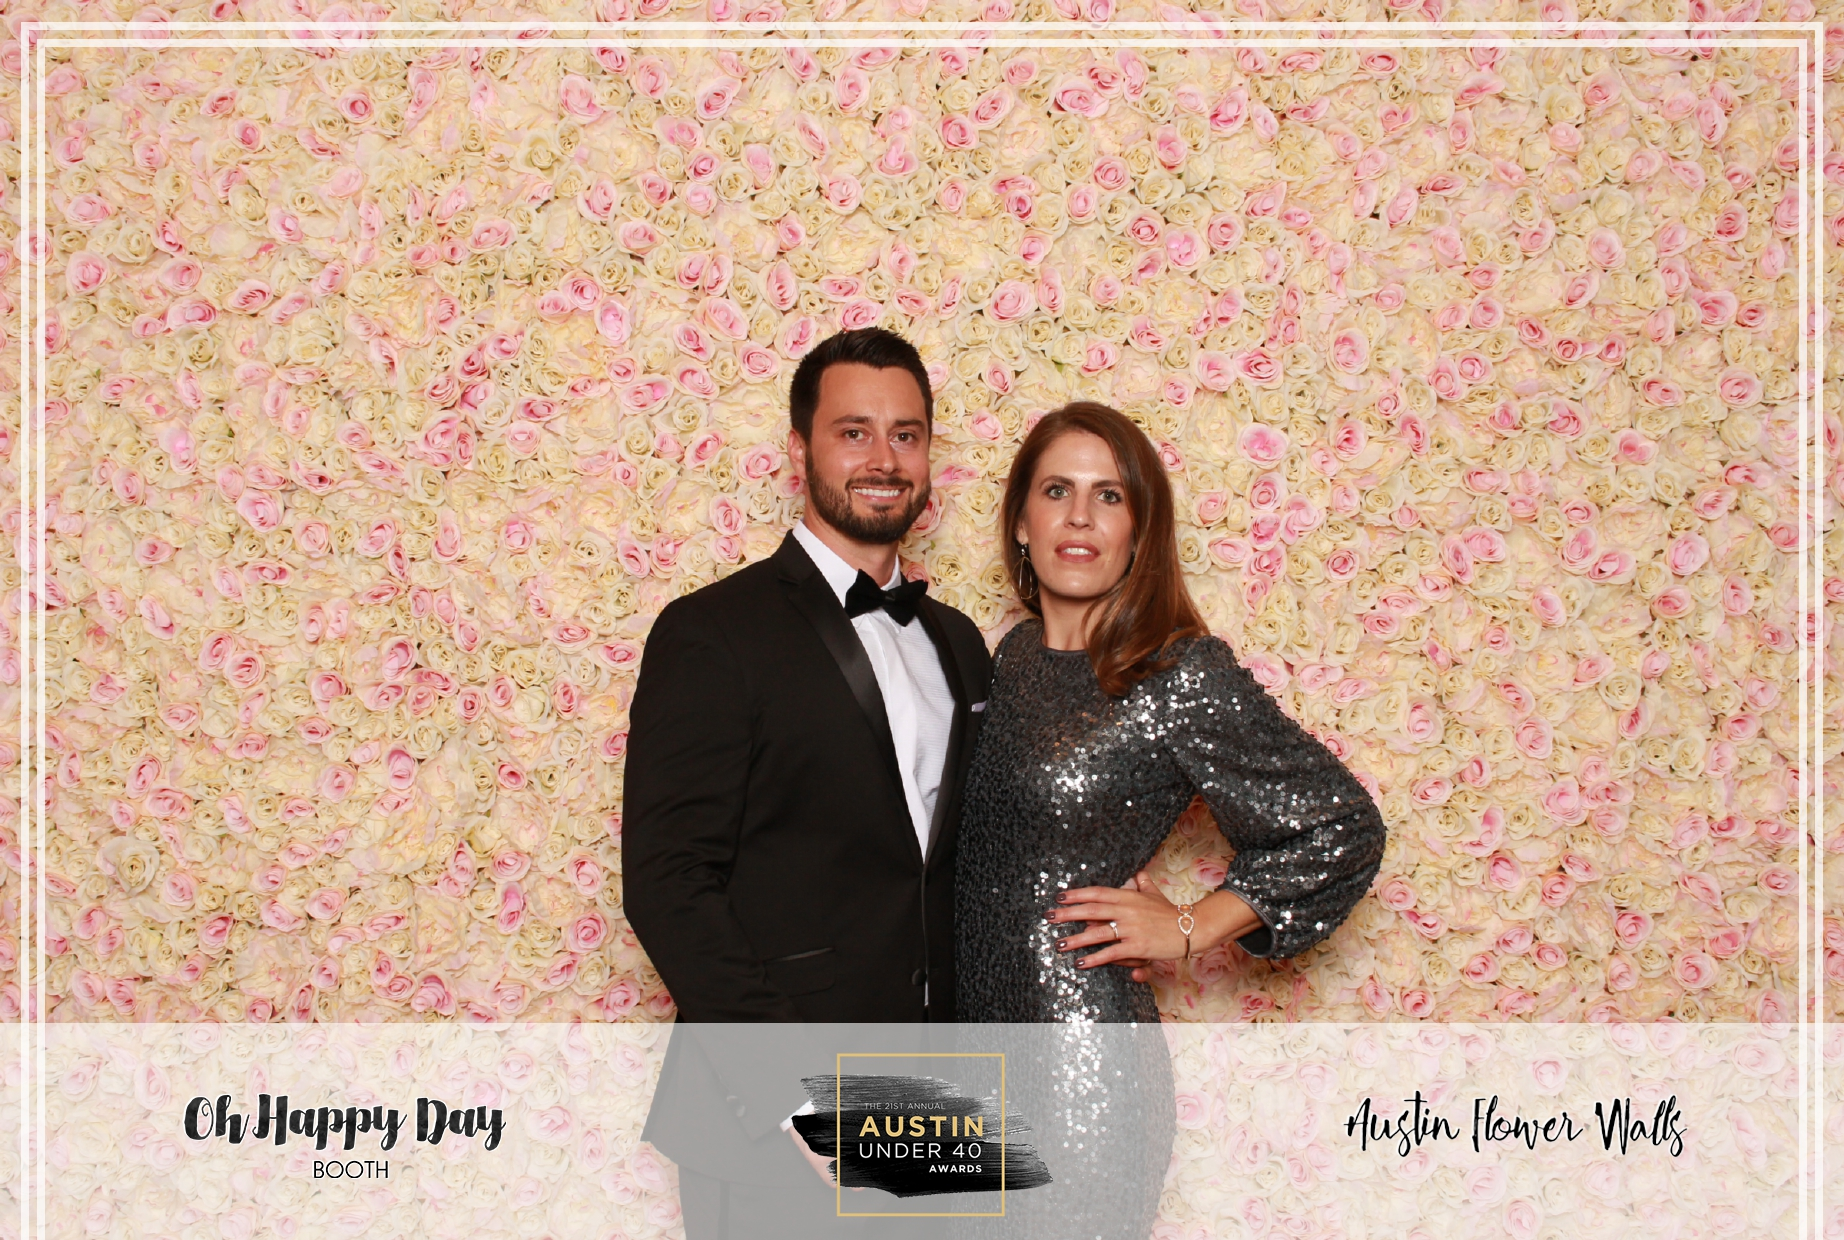 Oh Happy Day Booth - Austin Under 40-130.jpg